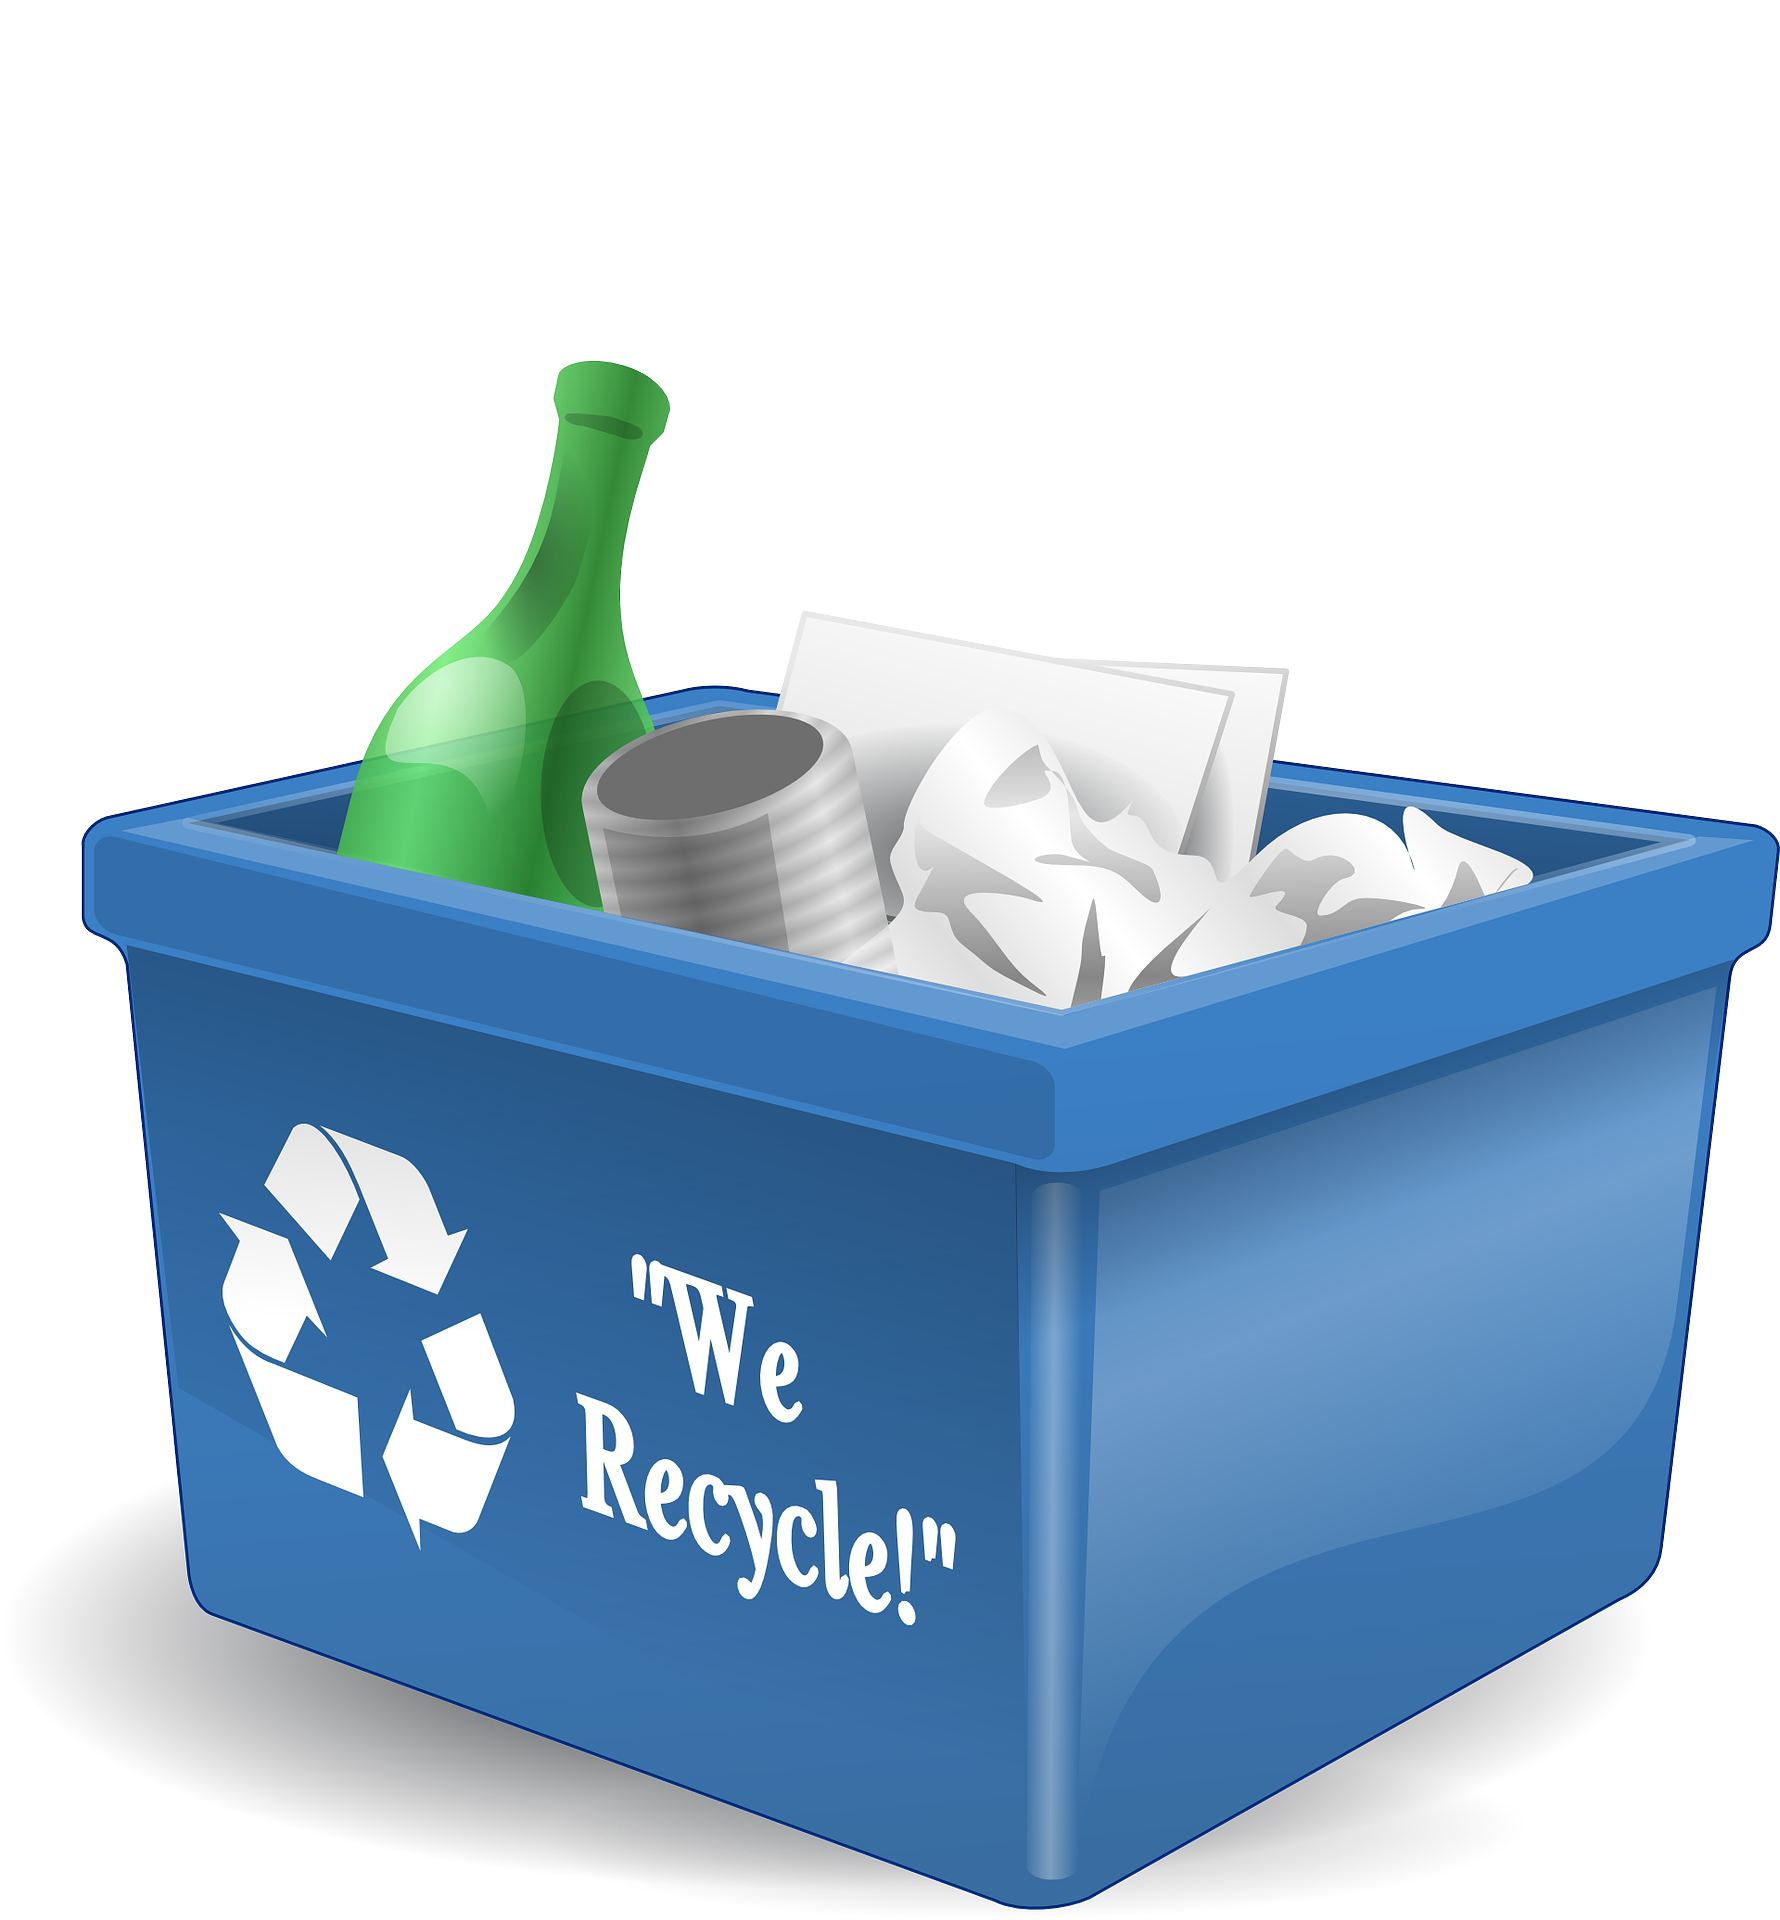 recycle-24543.png